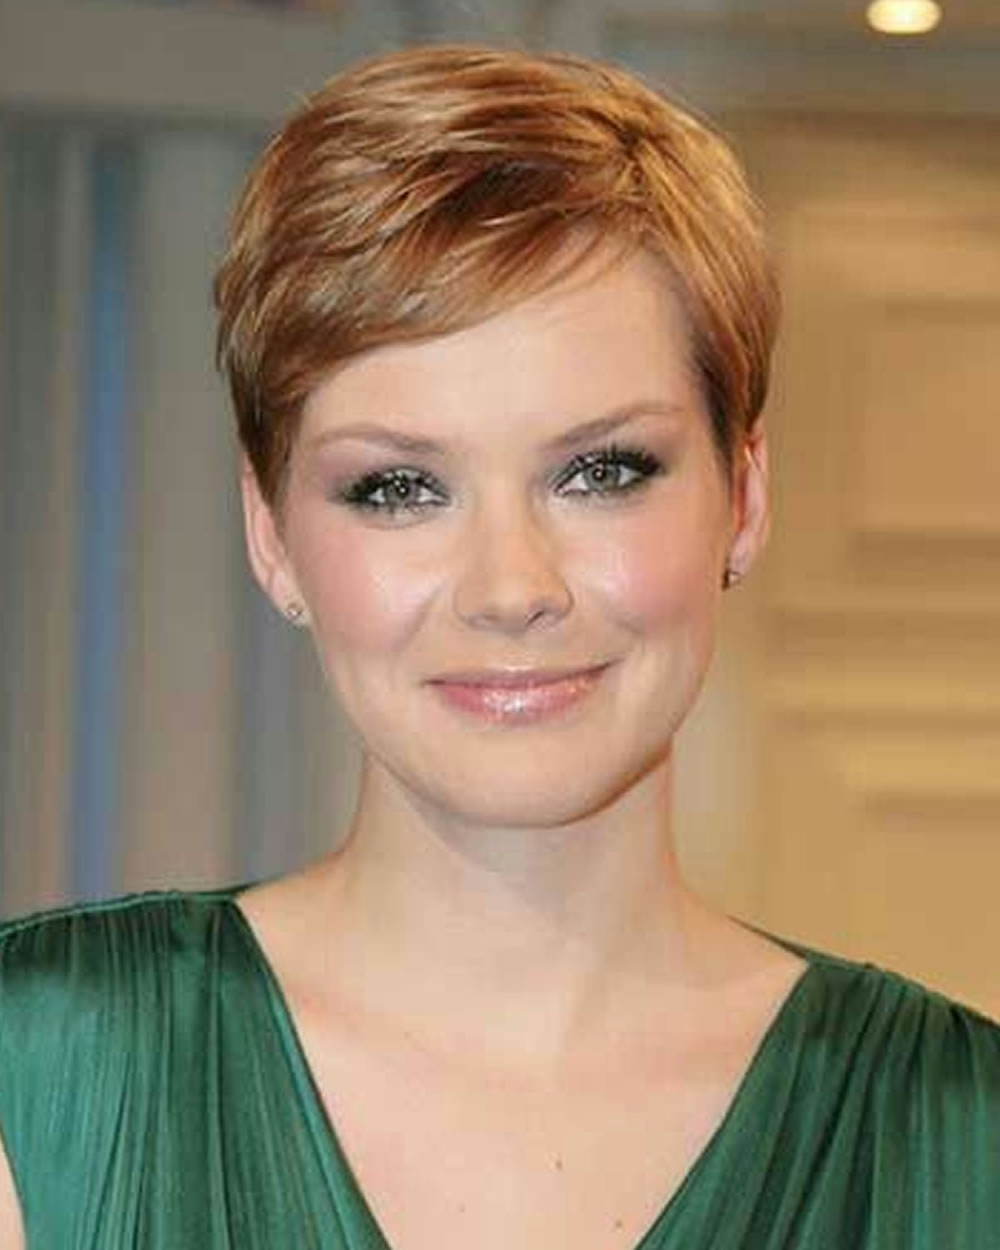 Pixie Hairstyles For Round Face And Thin Hair 2018 – Page 5 – Hairstyles Throughout Super Short Hairstyles For Round Faces (View 18 of 25)